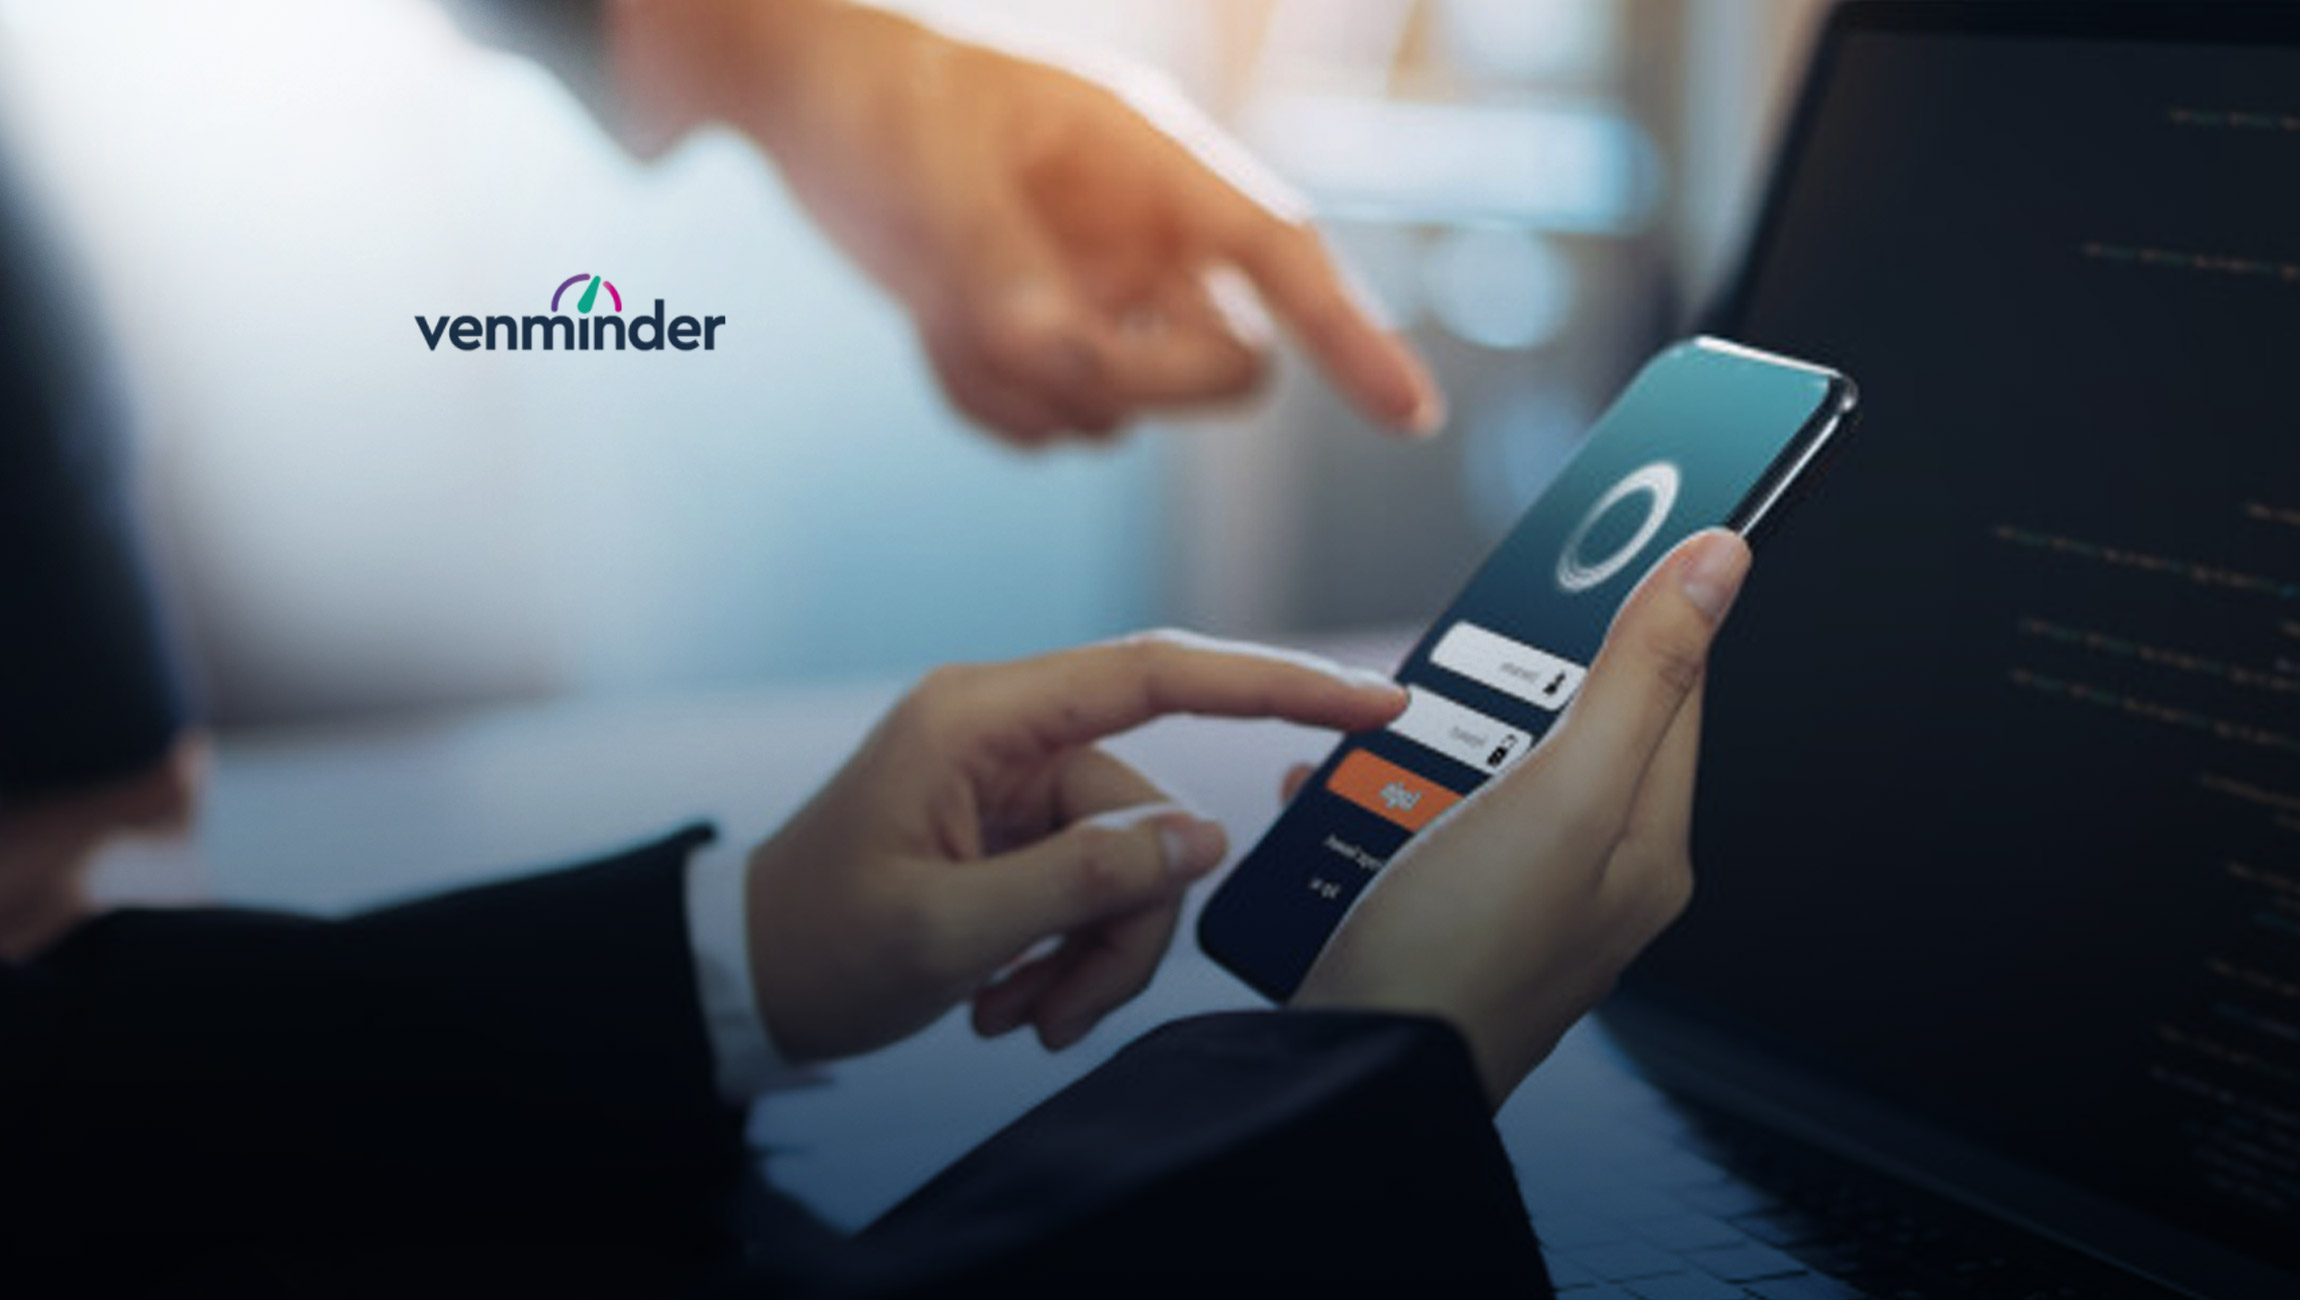 Venminder Recognized in 2021 Gartner® Magic Quadrant™ for IT Vendor Risk Management Tools for Third Year in a Row